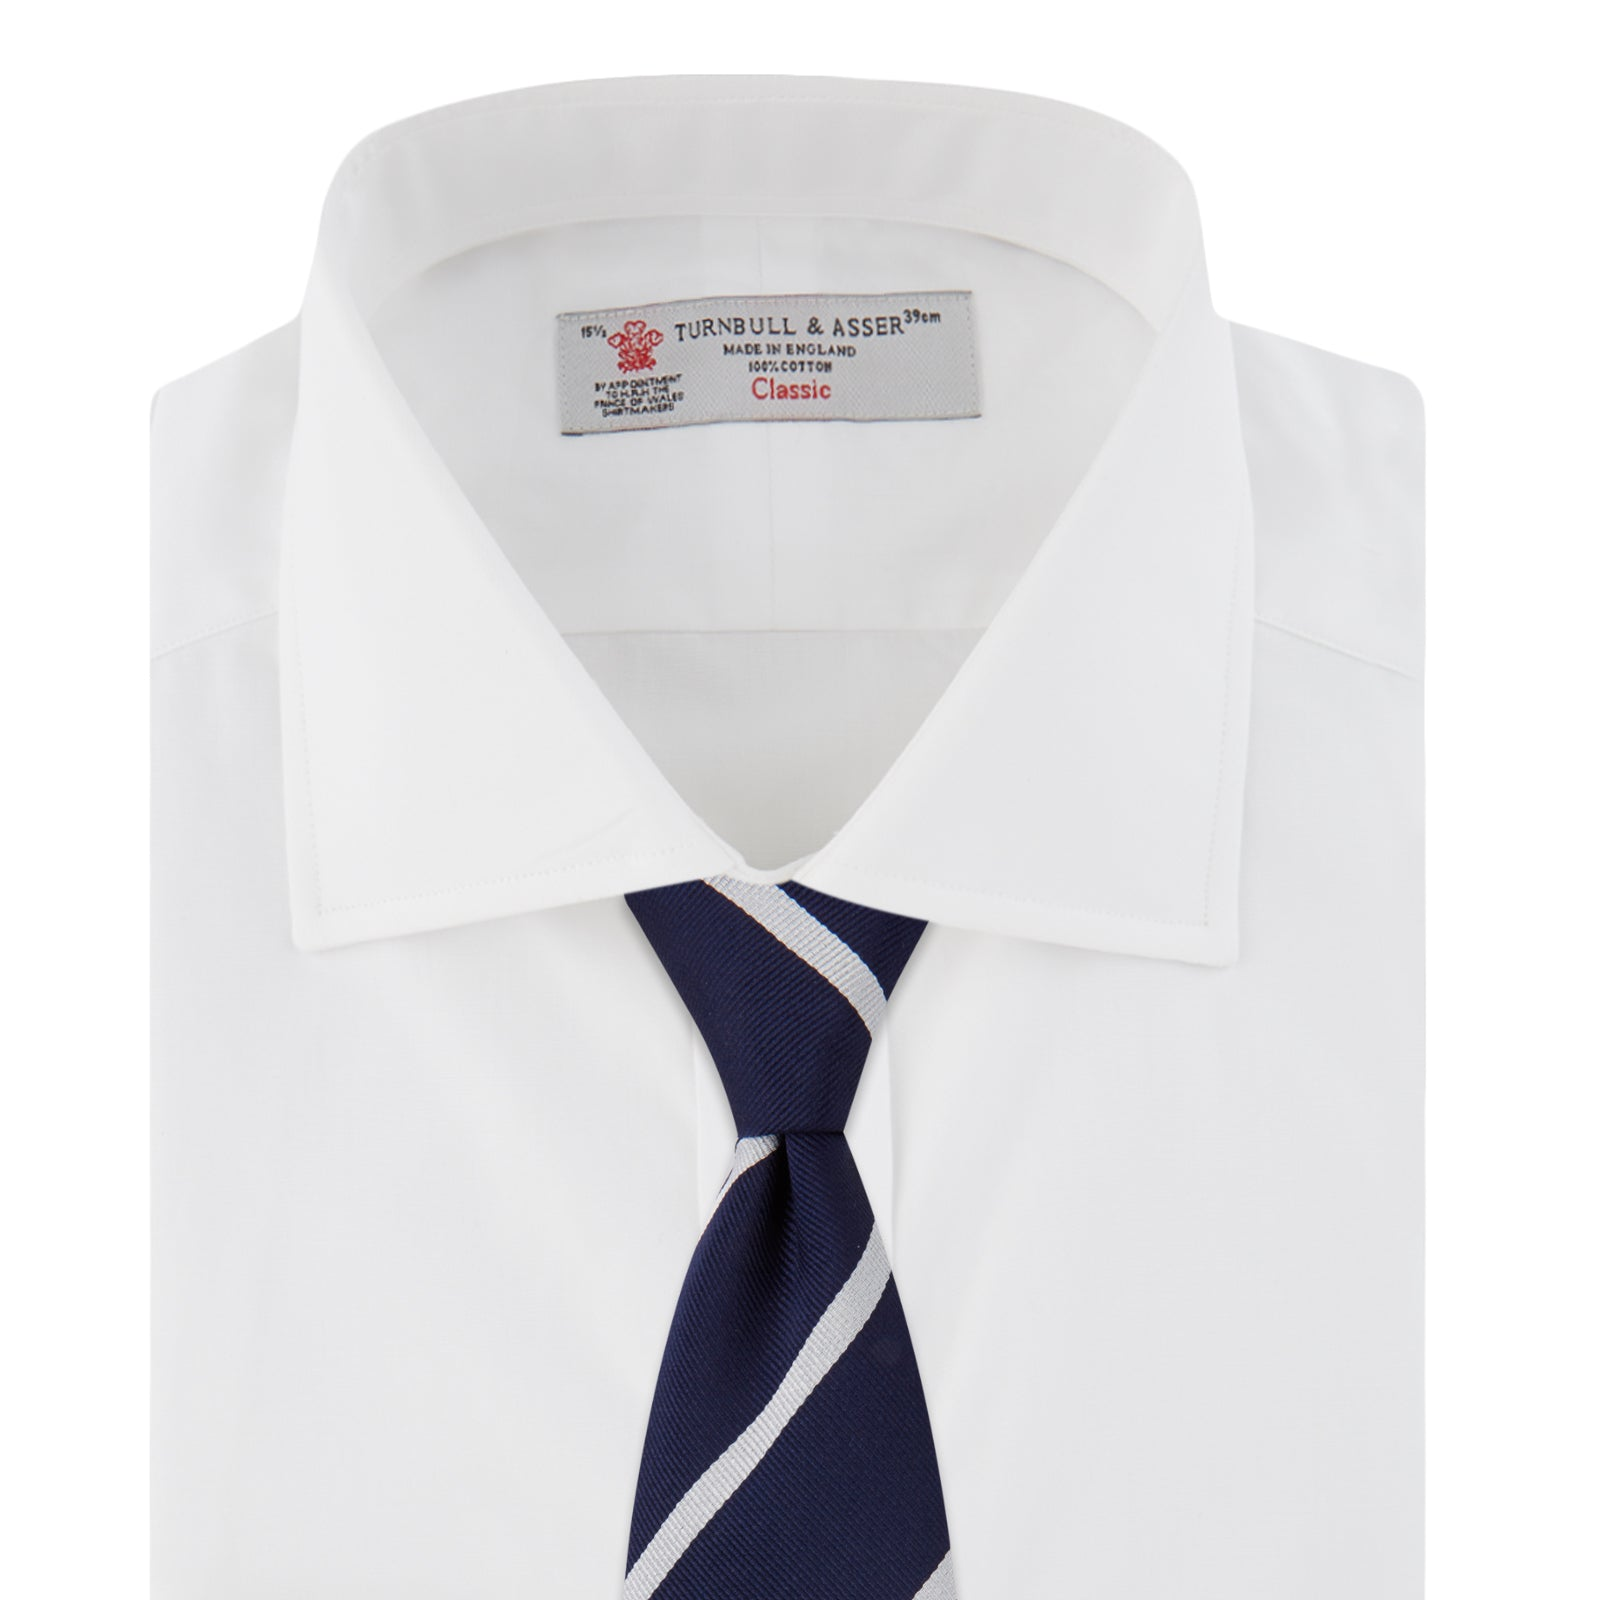 Plain White Cotton Shirt with Dr No Collar and Cocktail Cuff